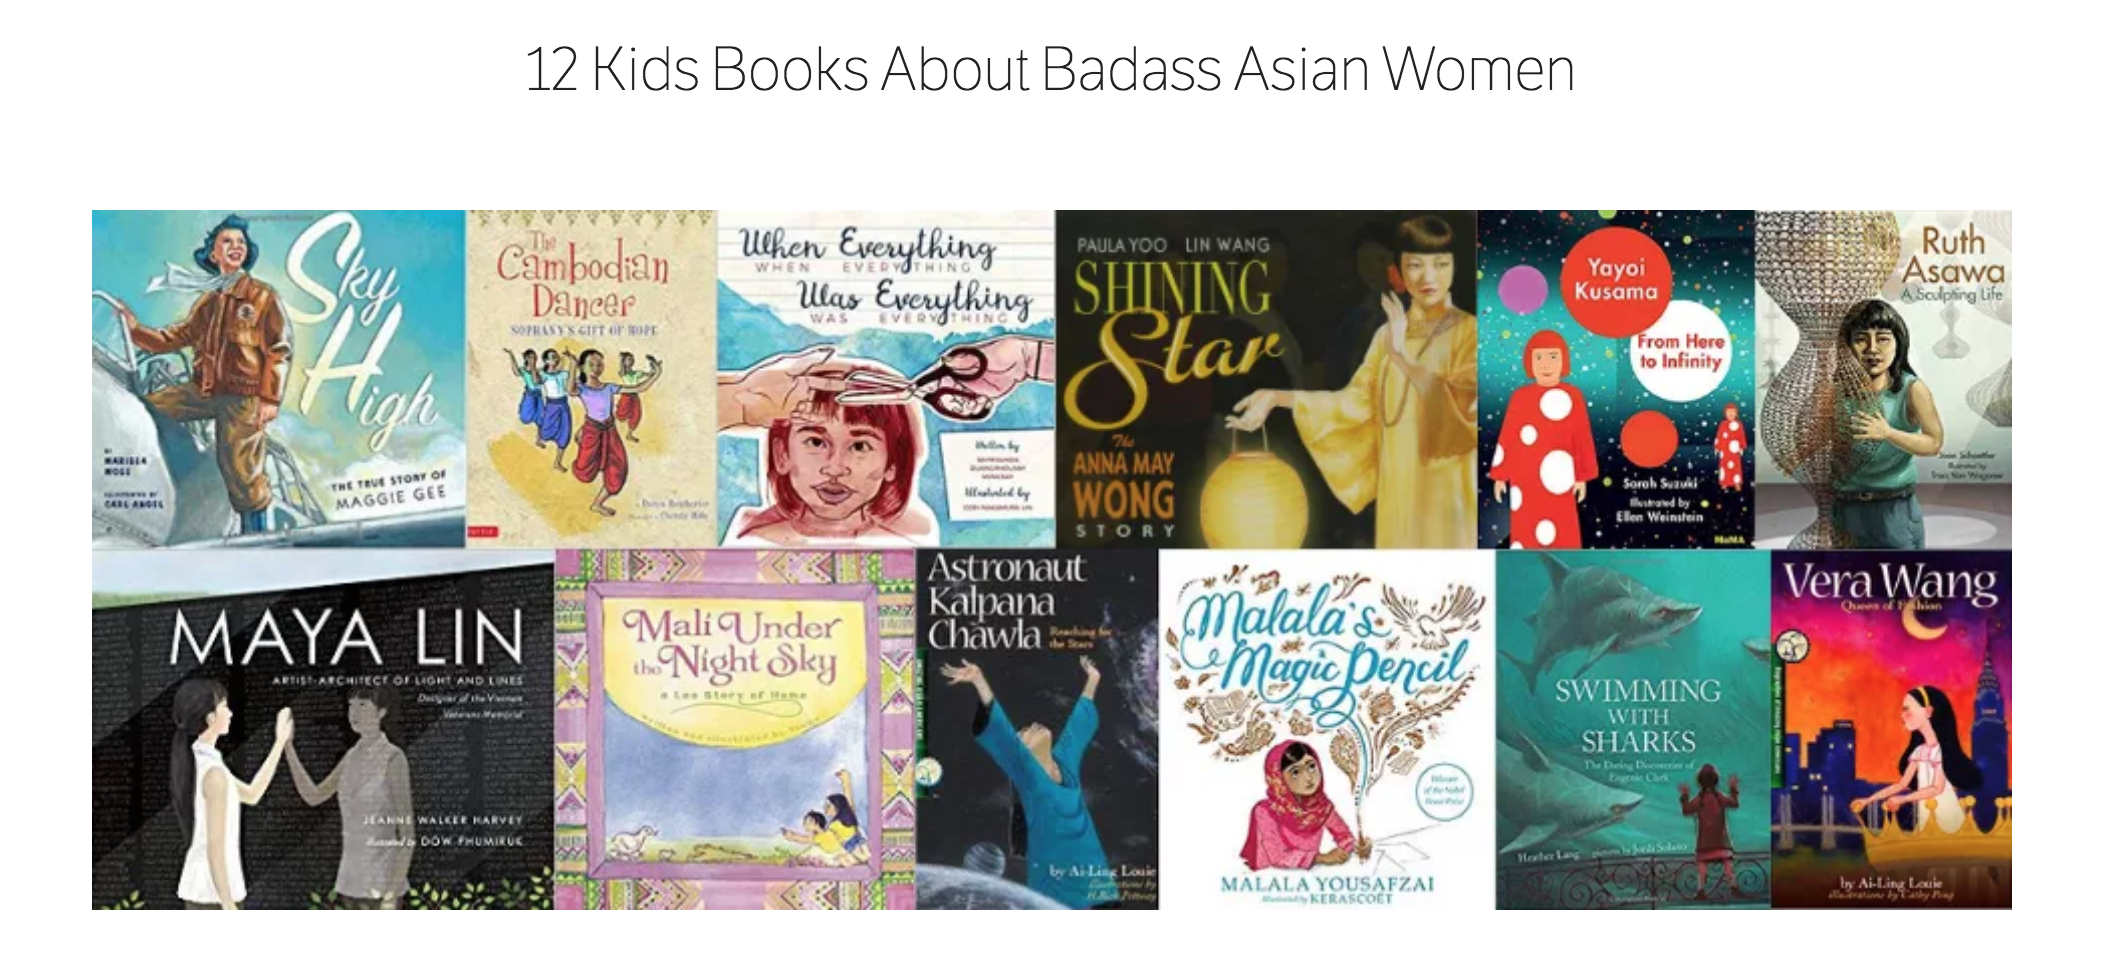 12 Kids books about badass Asian women